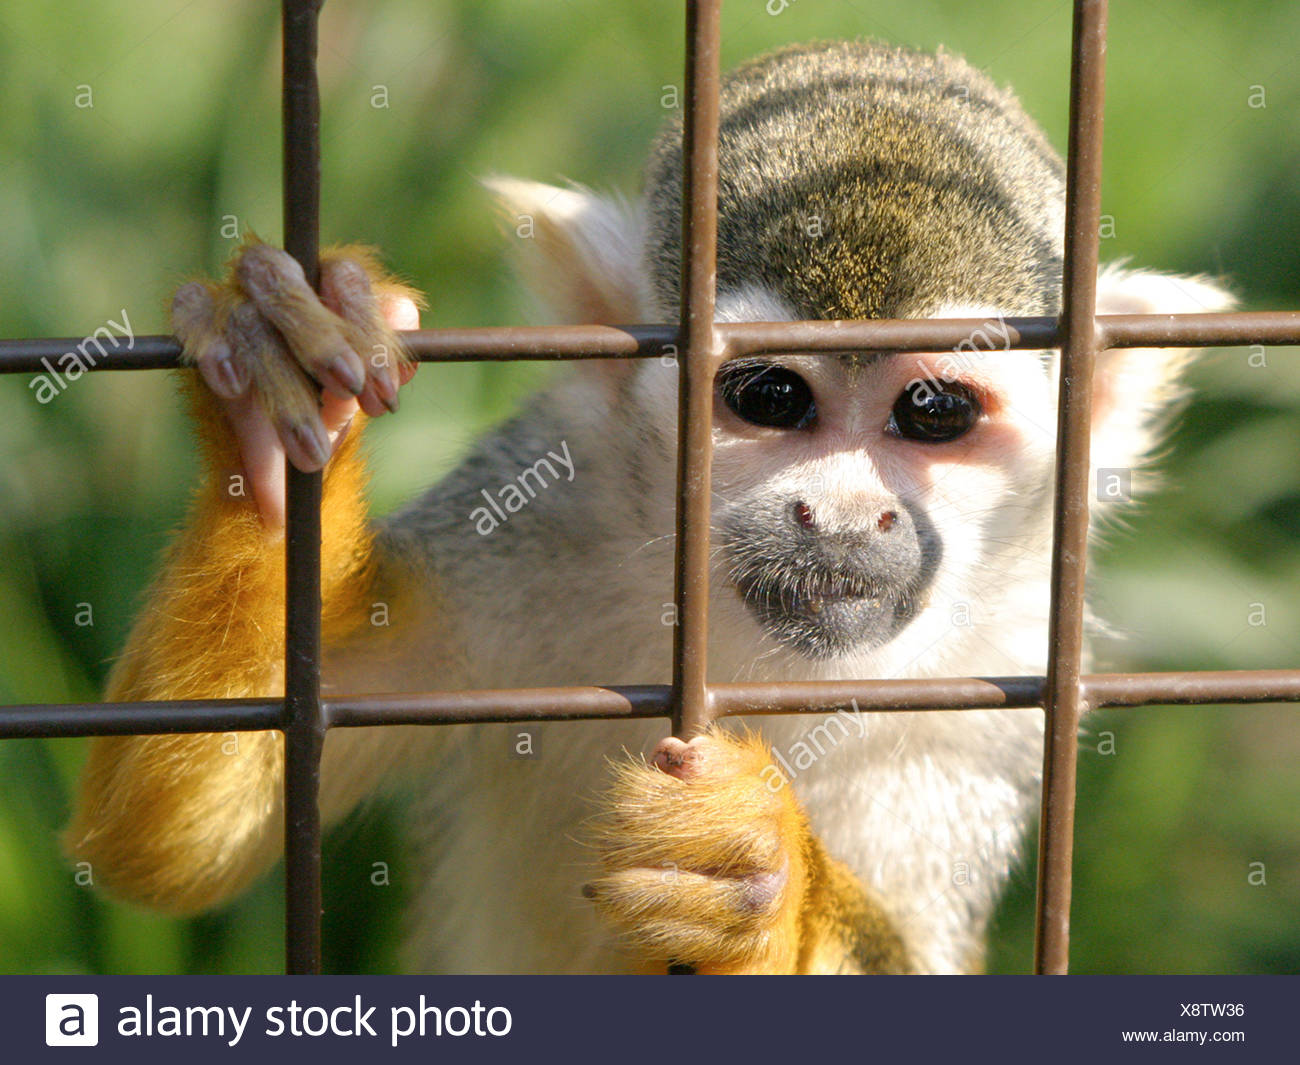 A squirrel monkey in a caged, looking out from behind bars. Stock Photo